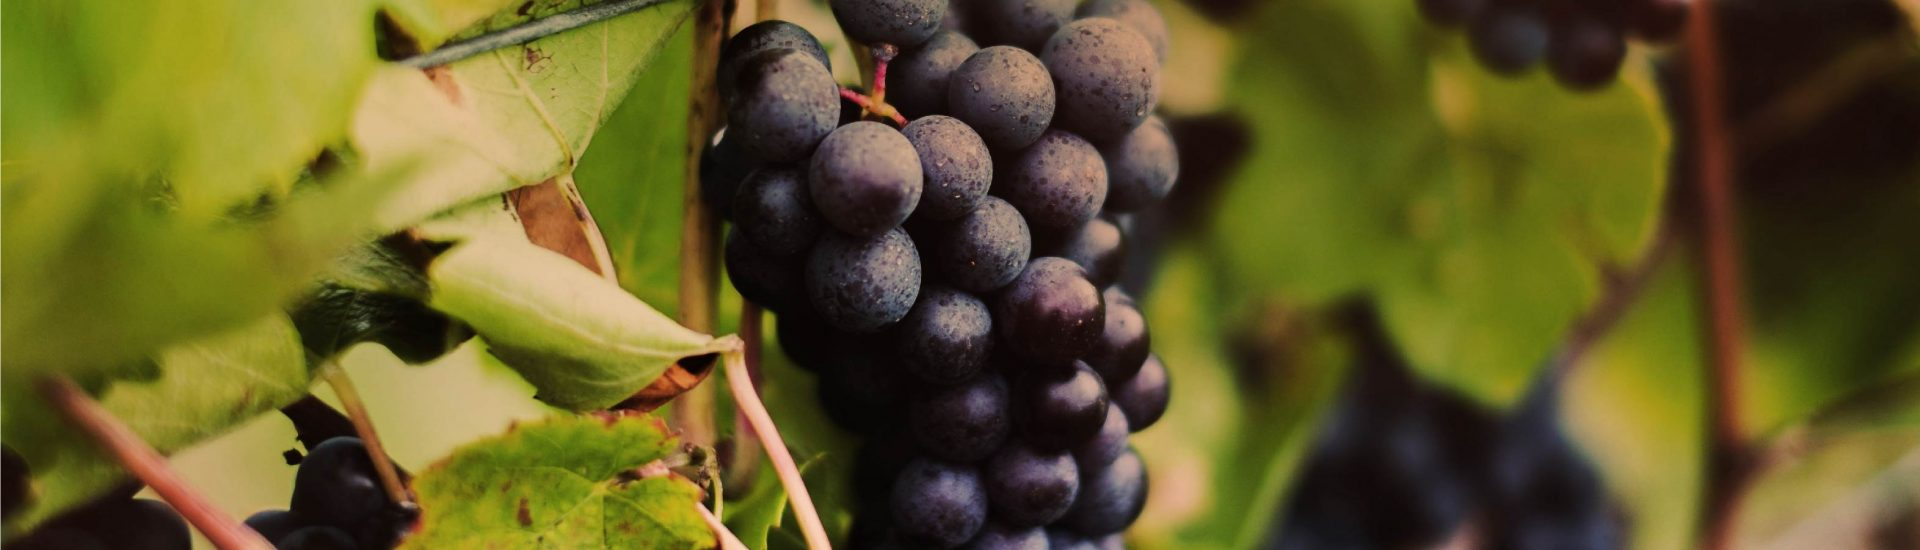 aime-boucher-french-wine-slider-grapes